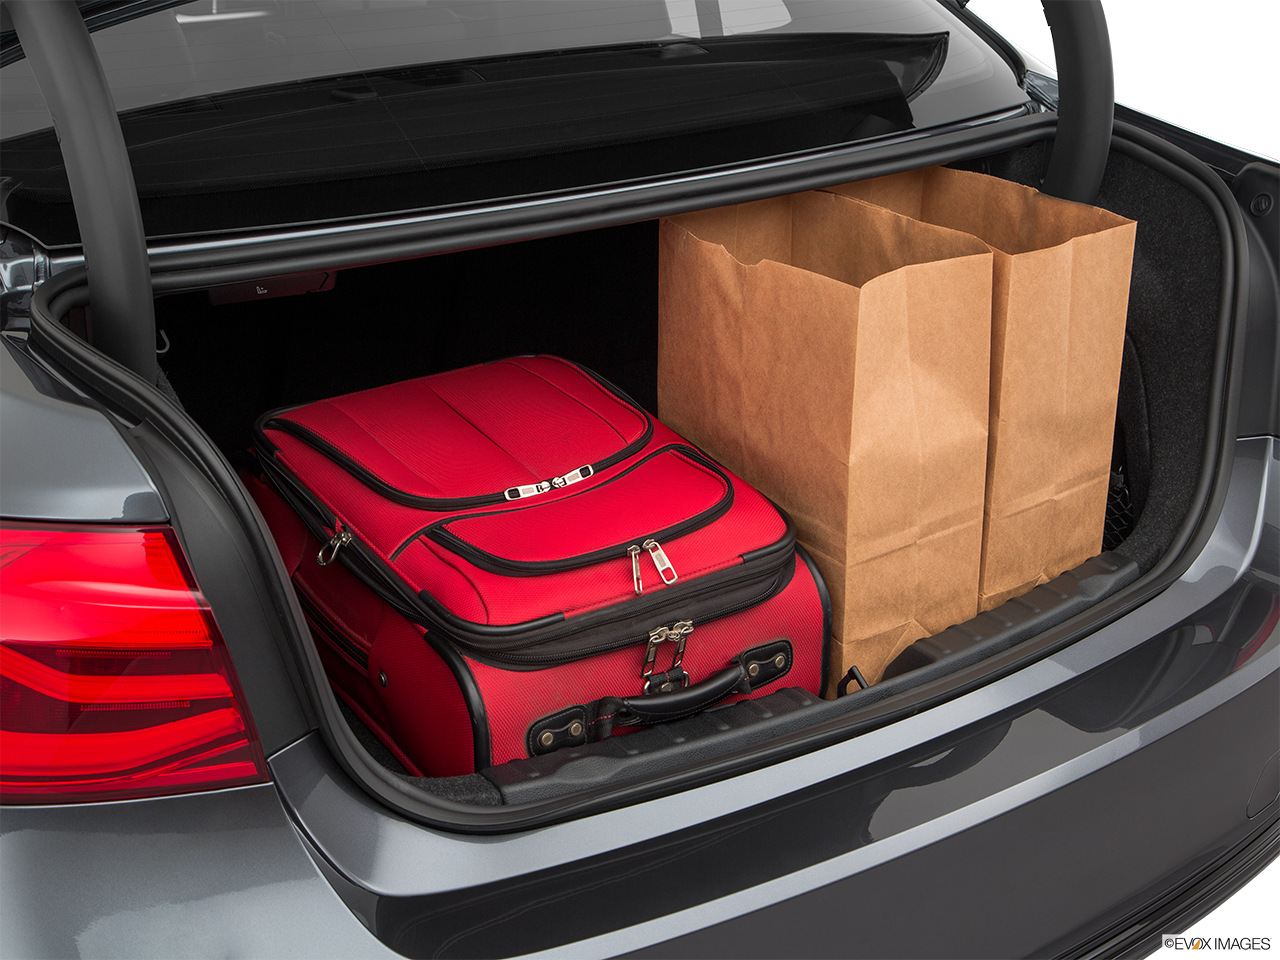 Trunk view of the BMW 330e